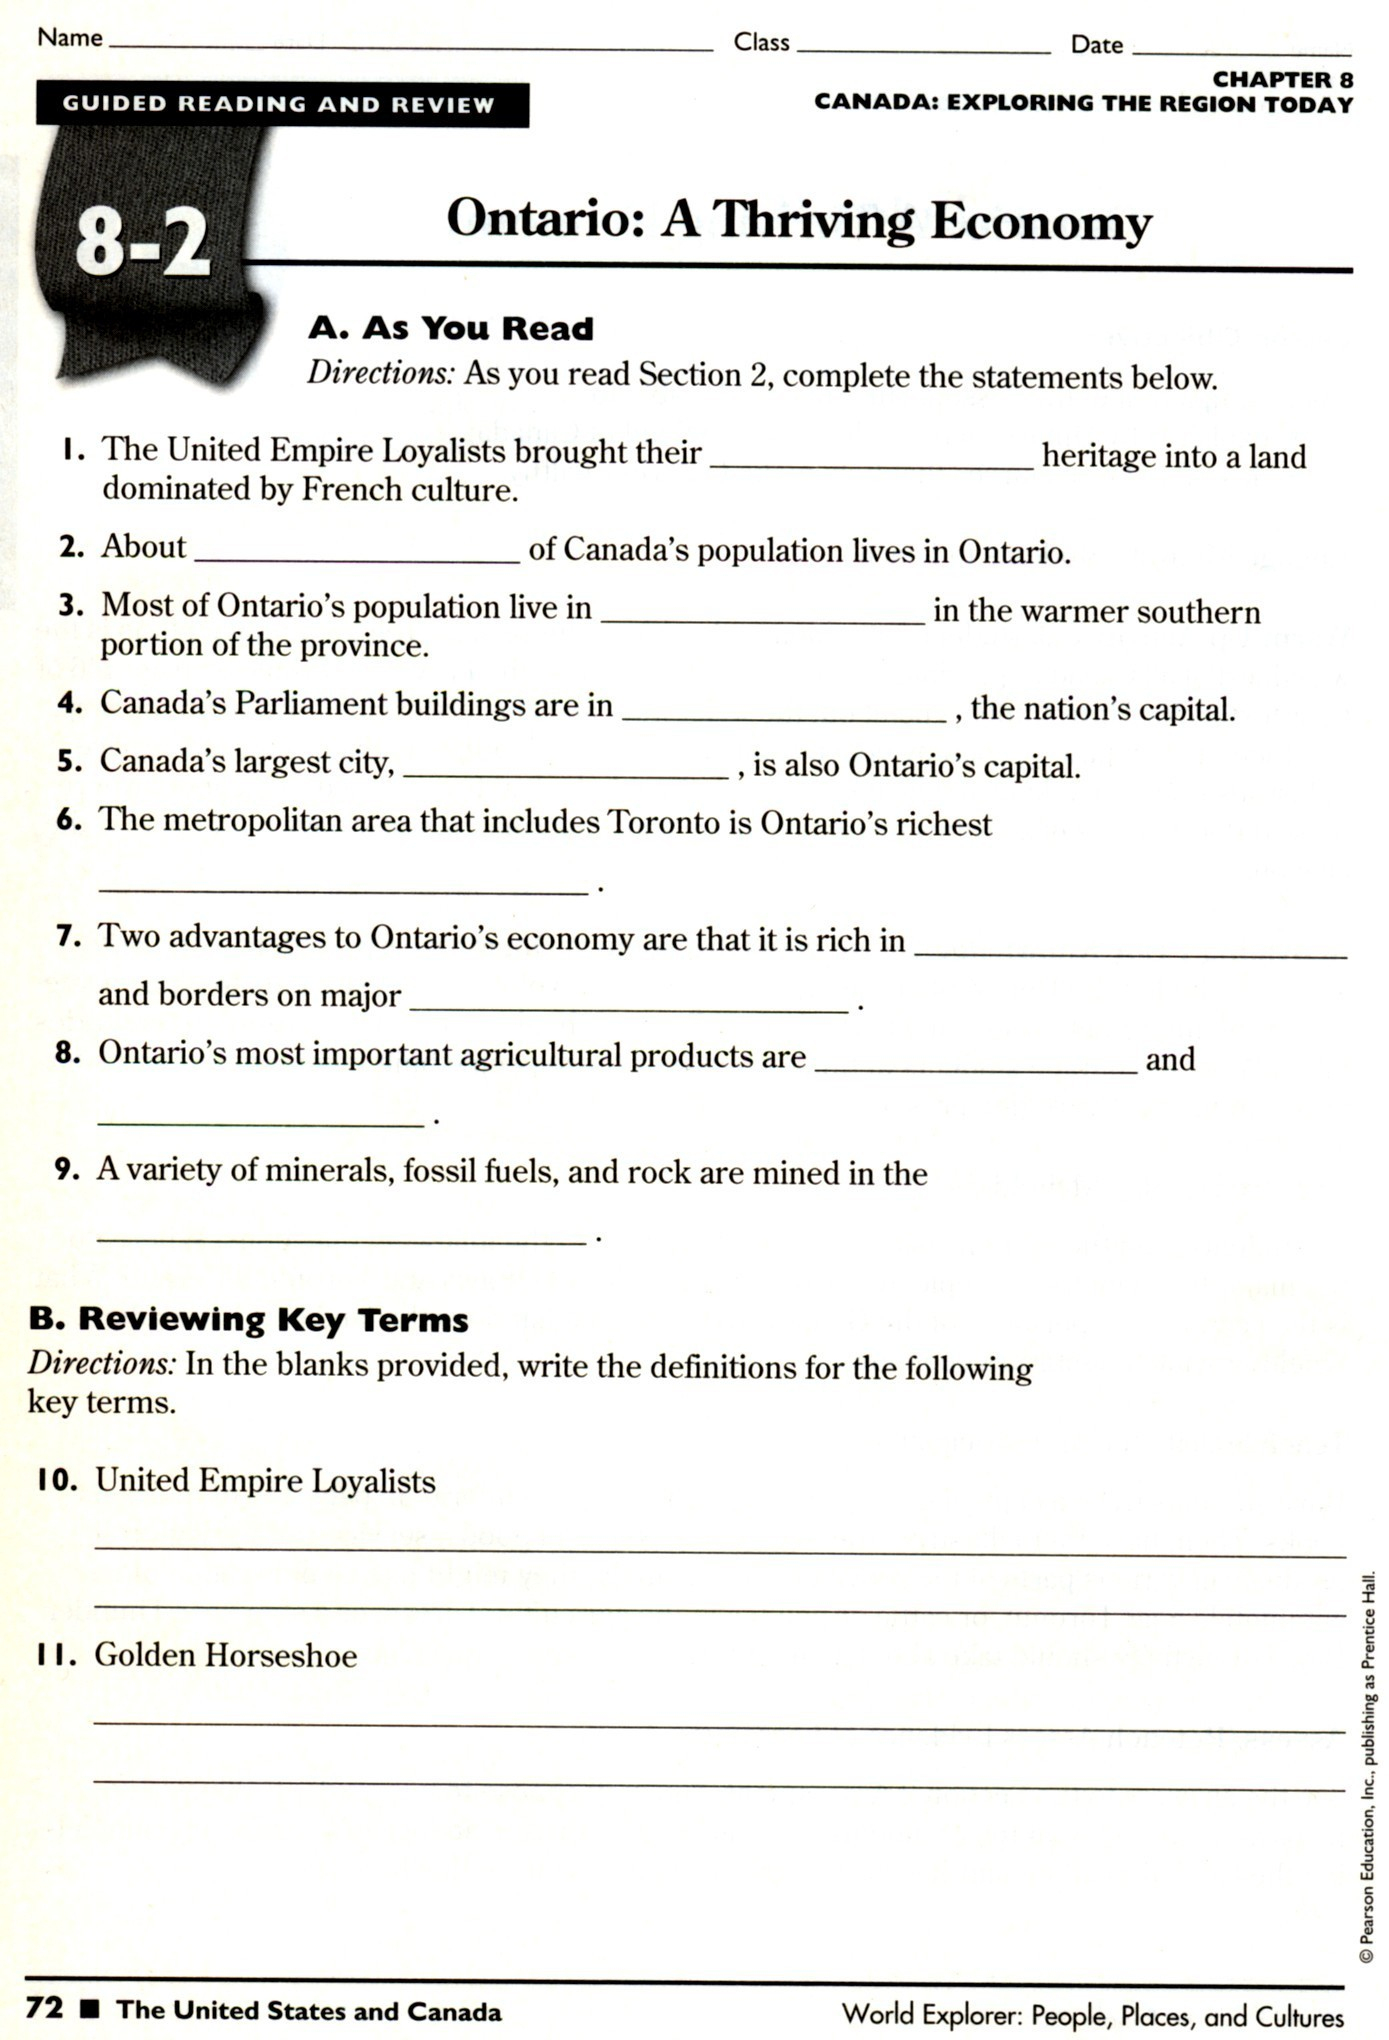 Free Printable 8Th Grade Social Studies Worksheets – Worksheet Template - Free Printable 8Th Grade Social Studies Worksheets